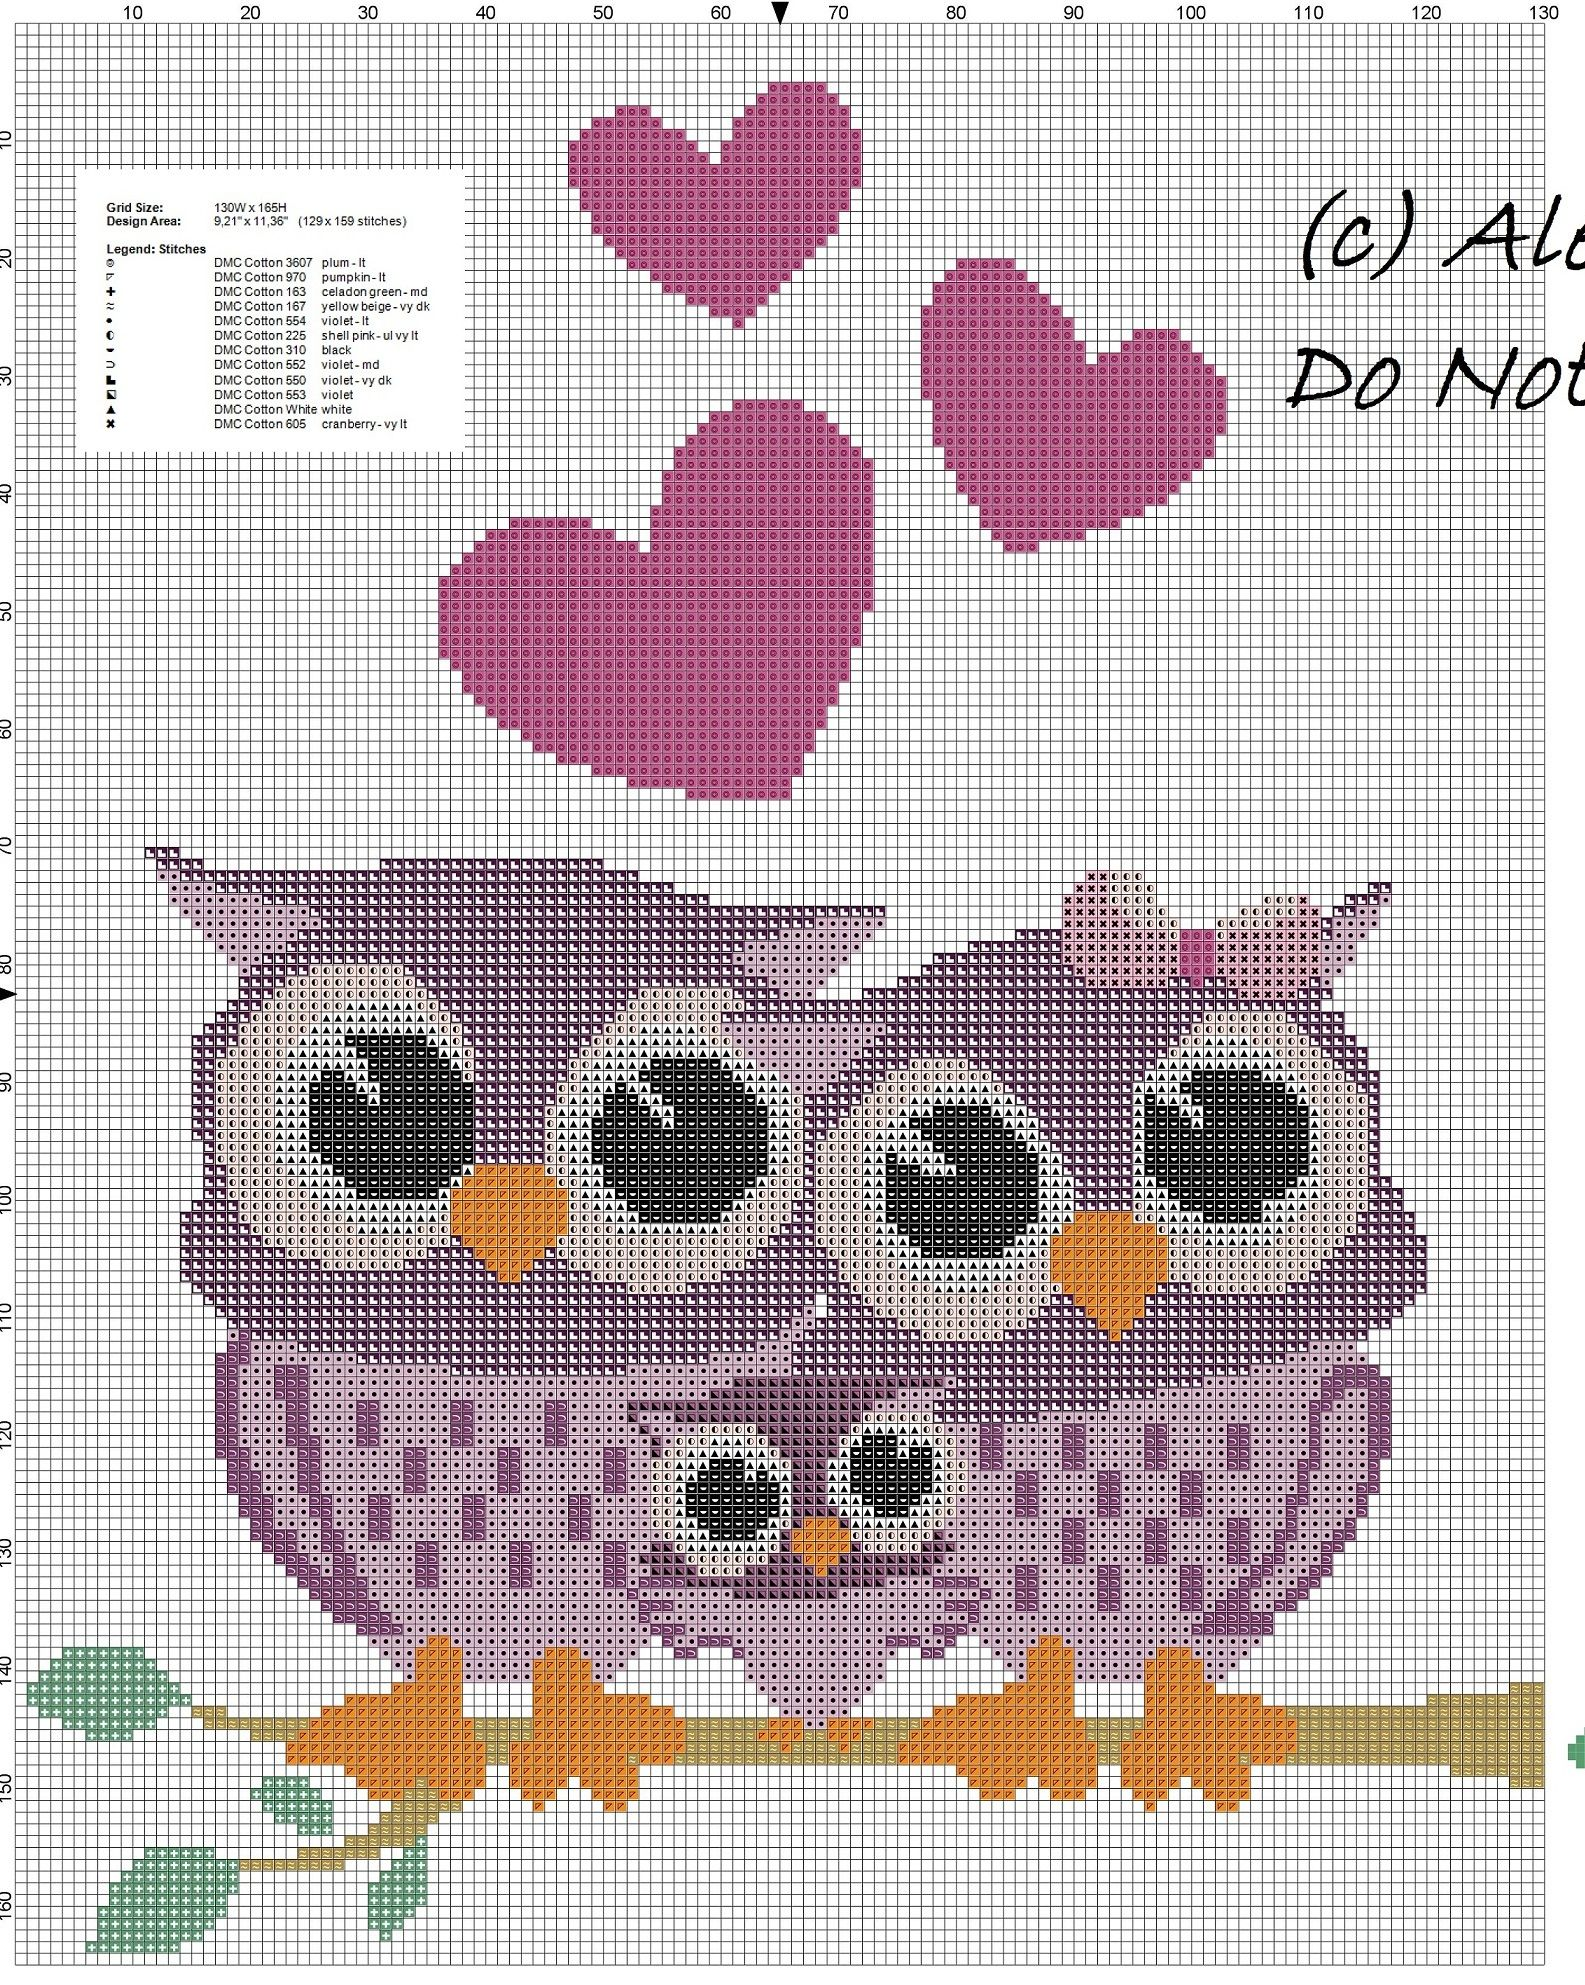 Owls family free cross stitch pattern.jpg | Handwerken | Pinterest ...